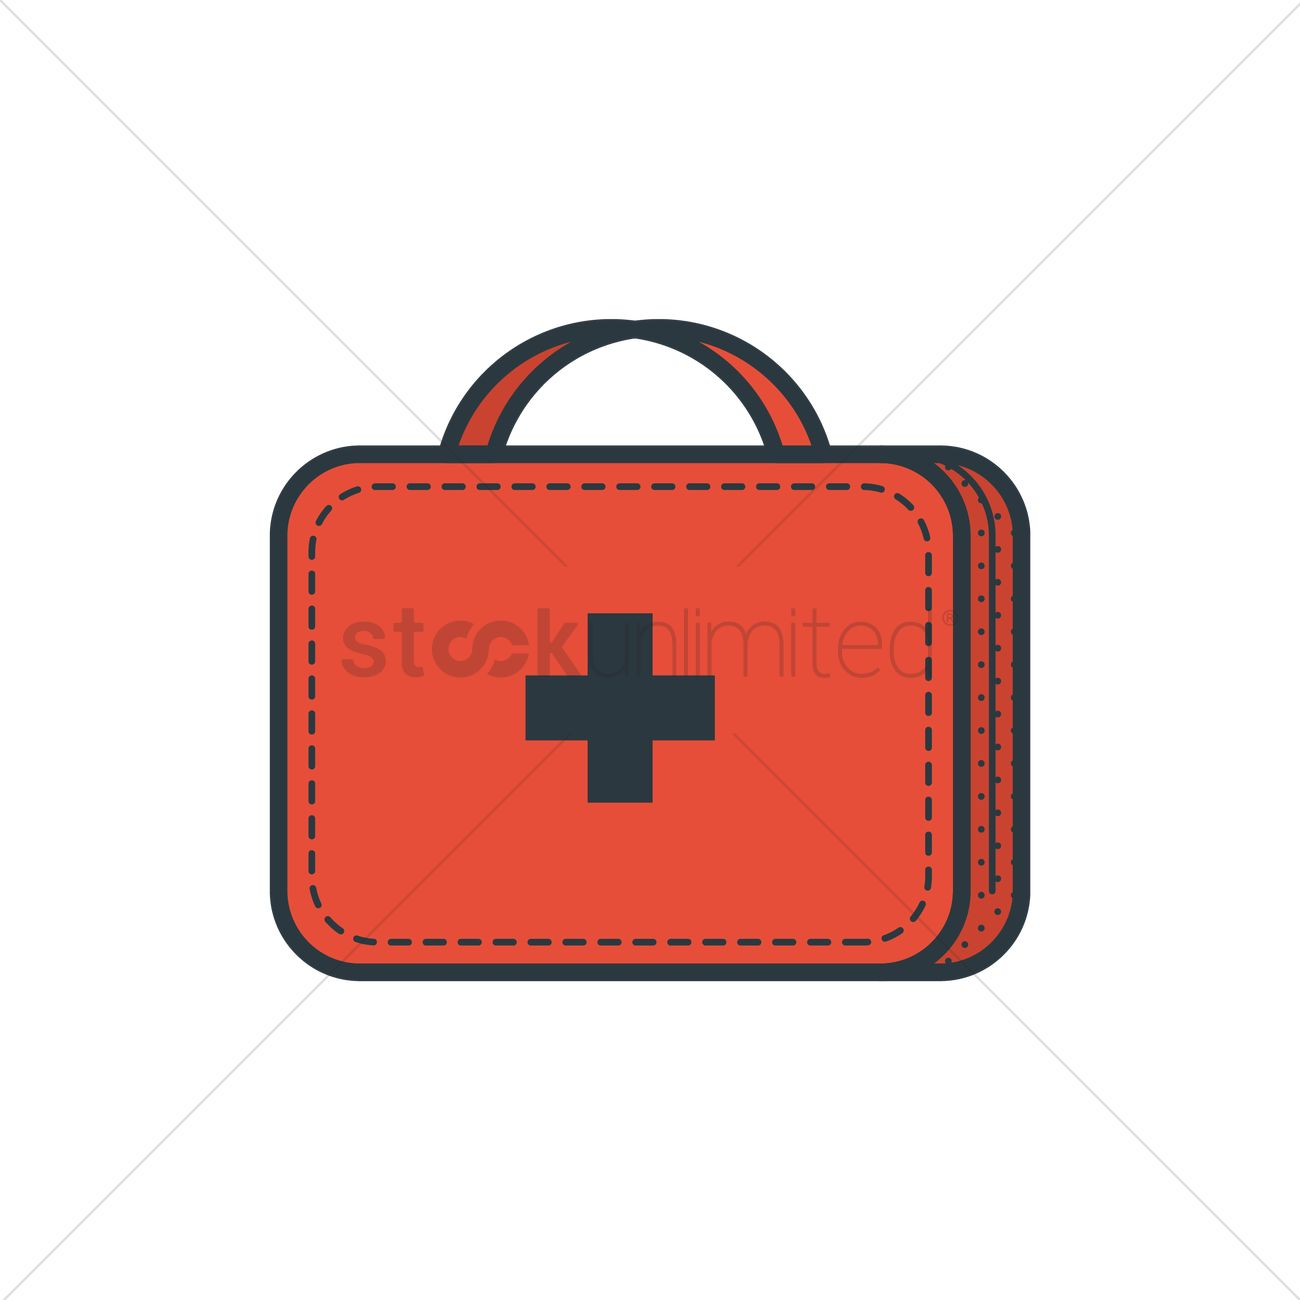 First aid kit Vector Image - 1863615 | StockUnlimited